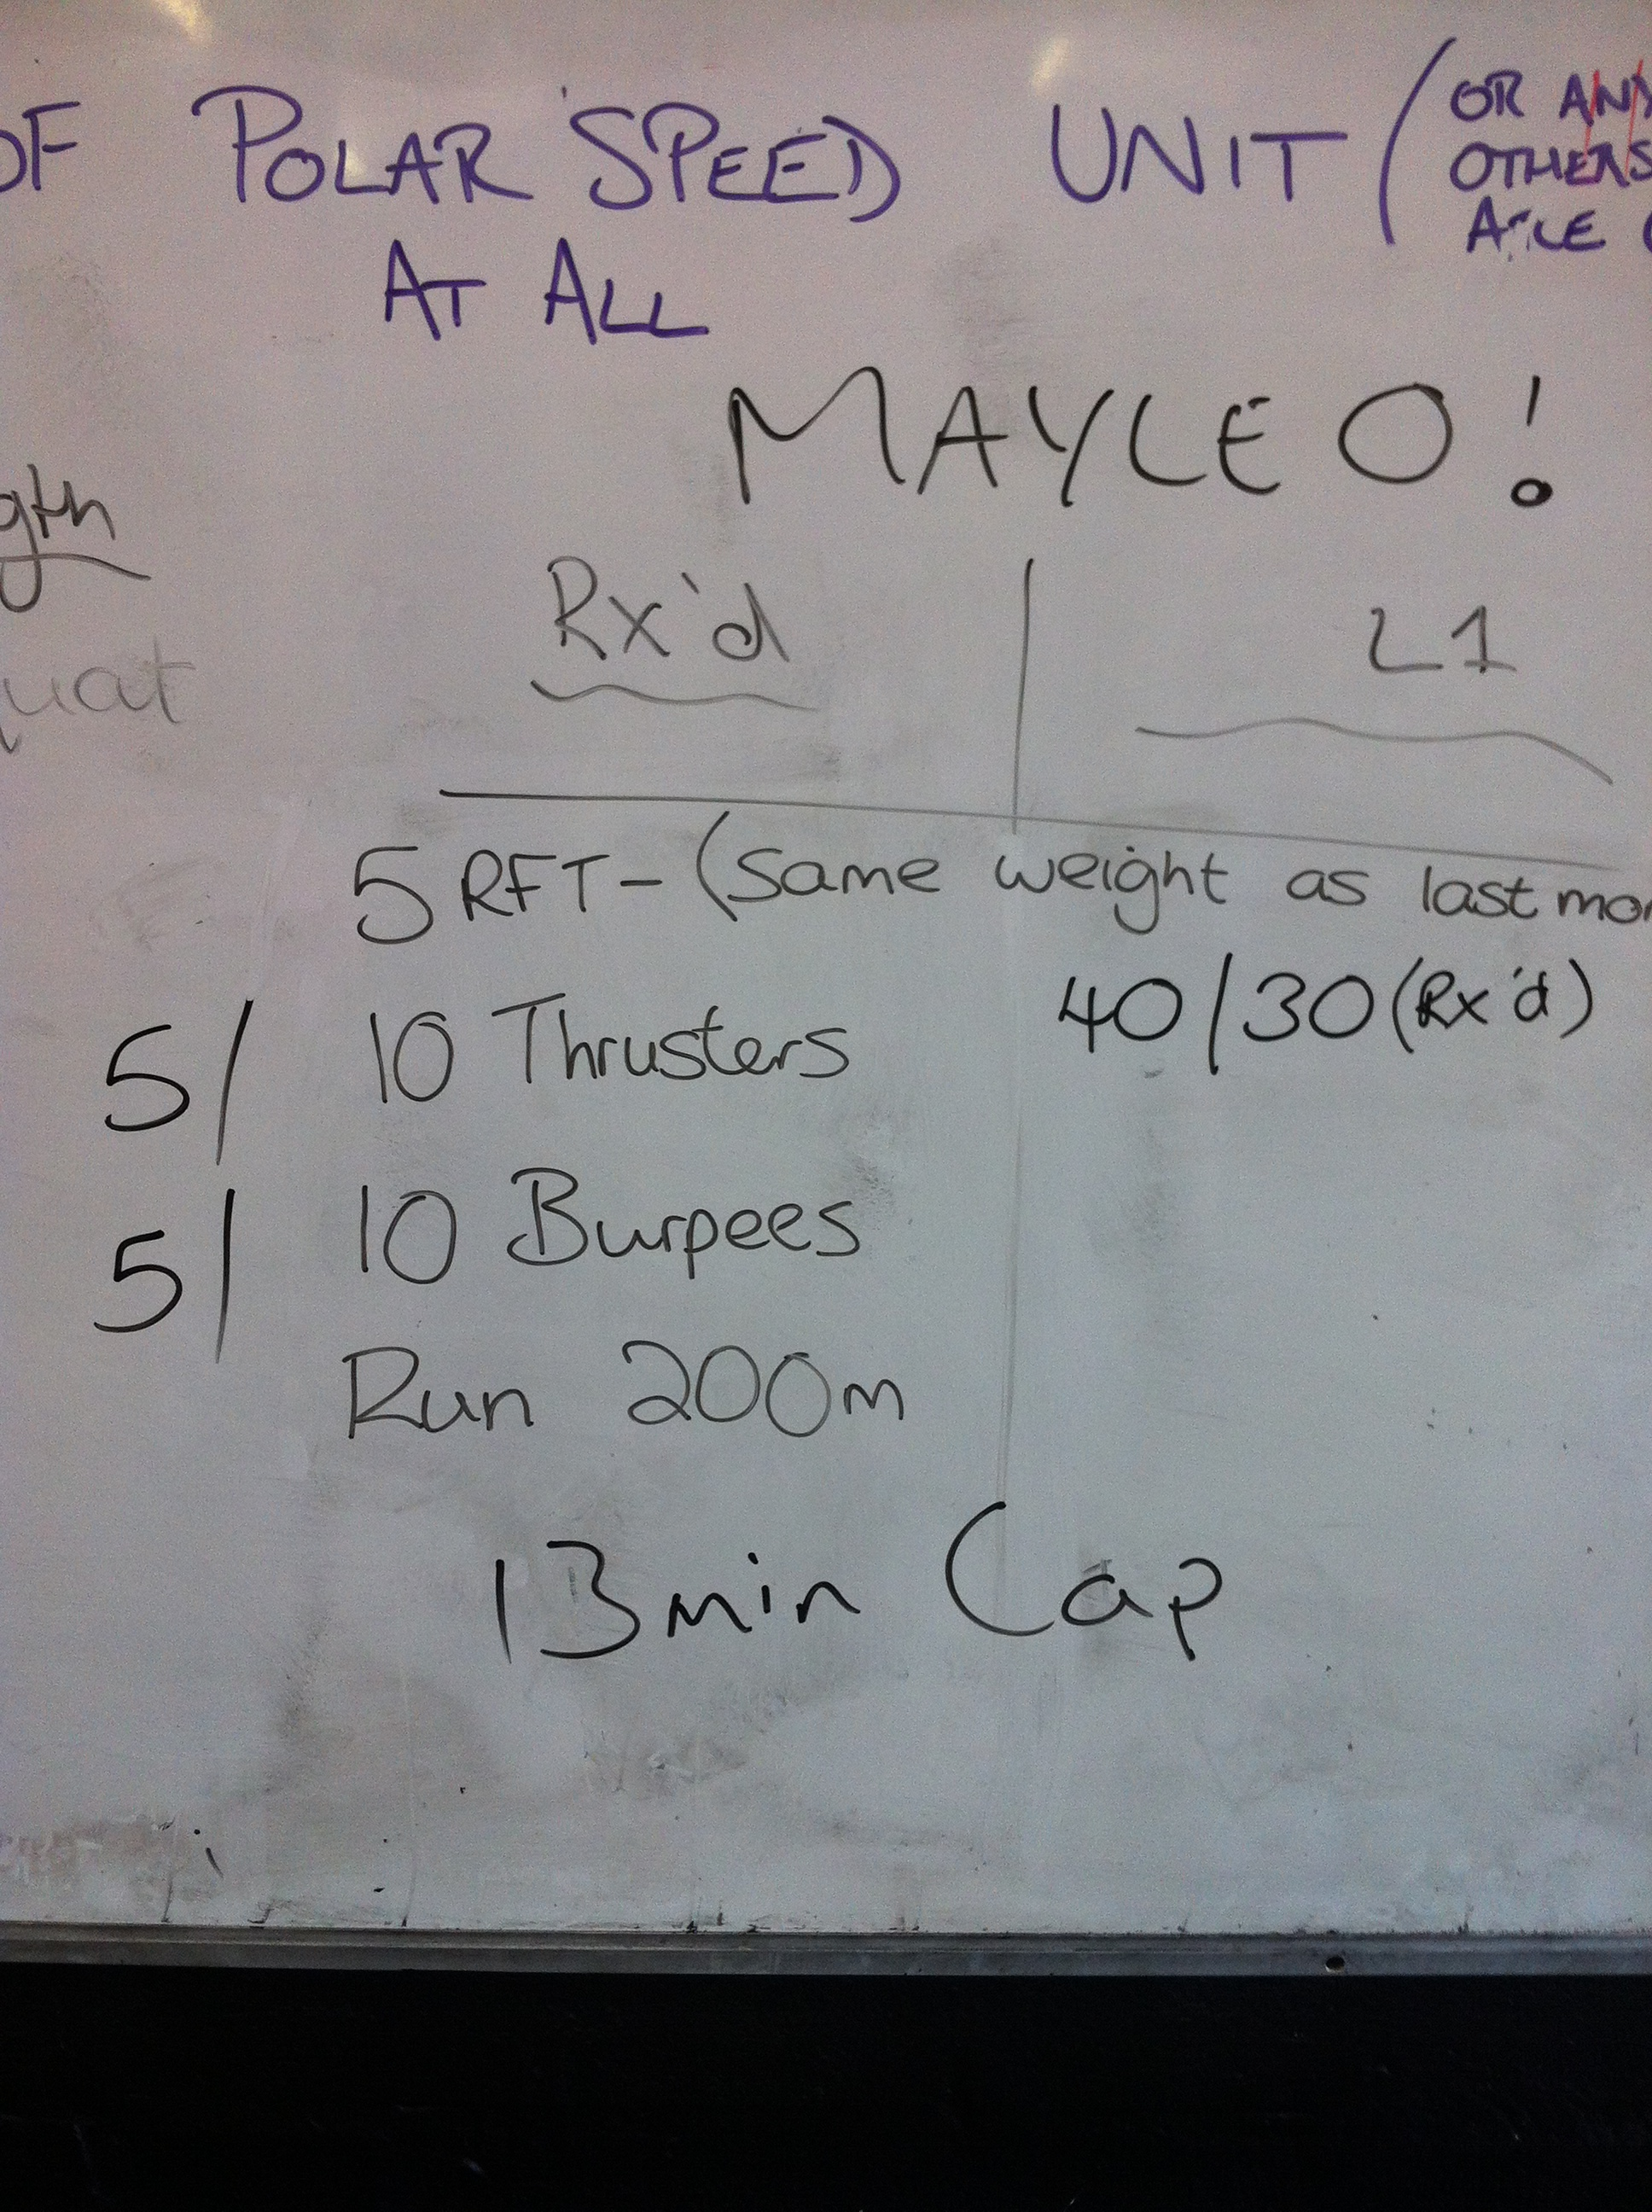 Bench mark WOD